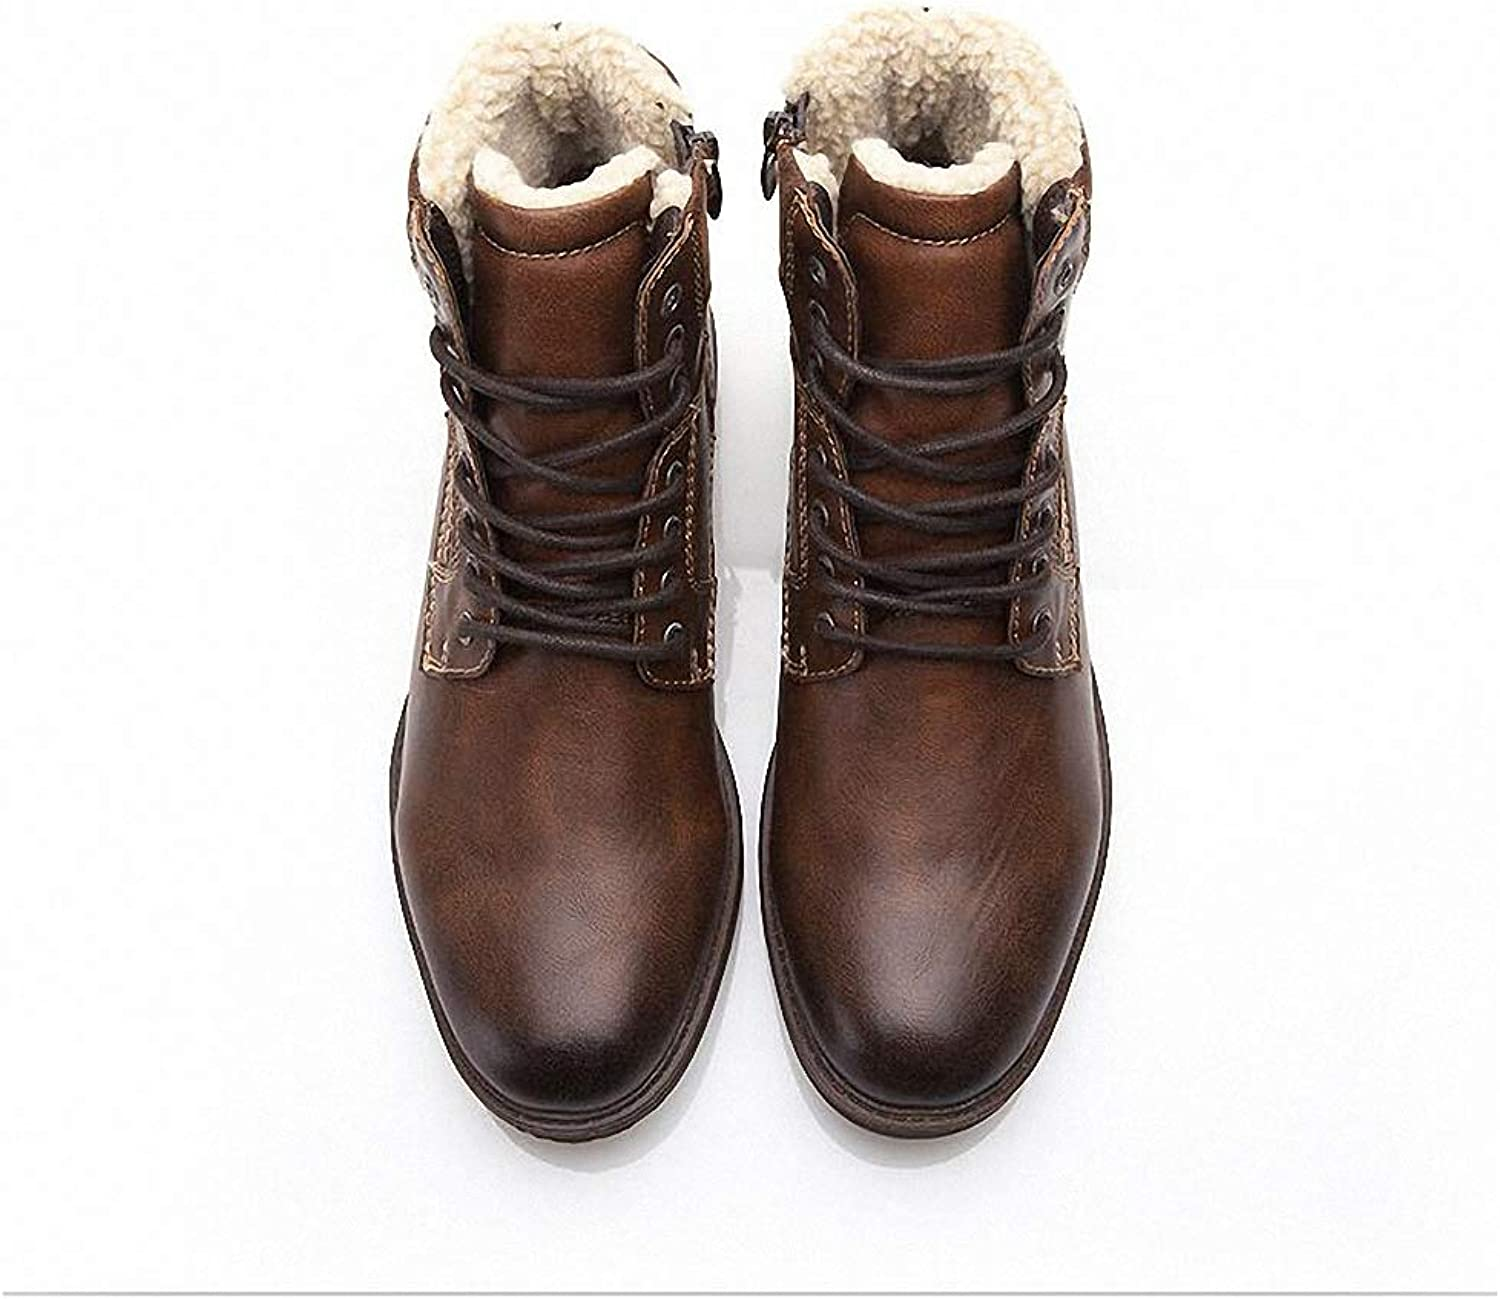 Mens Backpacking Boots Men shoes Autumn Winter Motorcycle Men Boots High-Cut Lace-up Warm Men Casual shoes Fashion